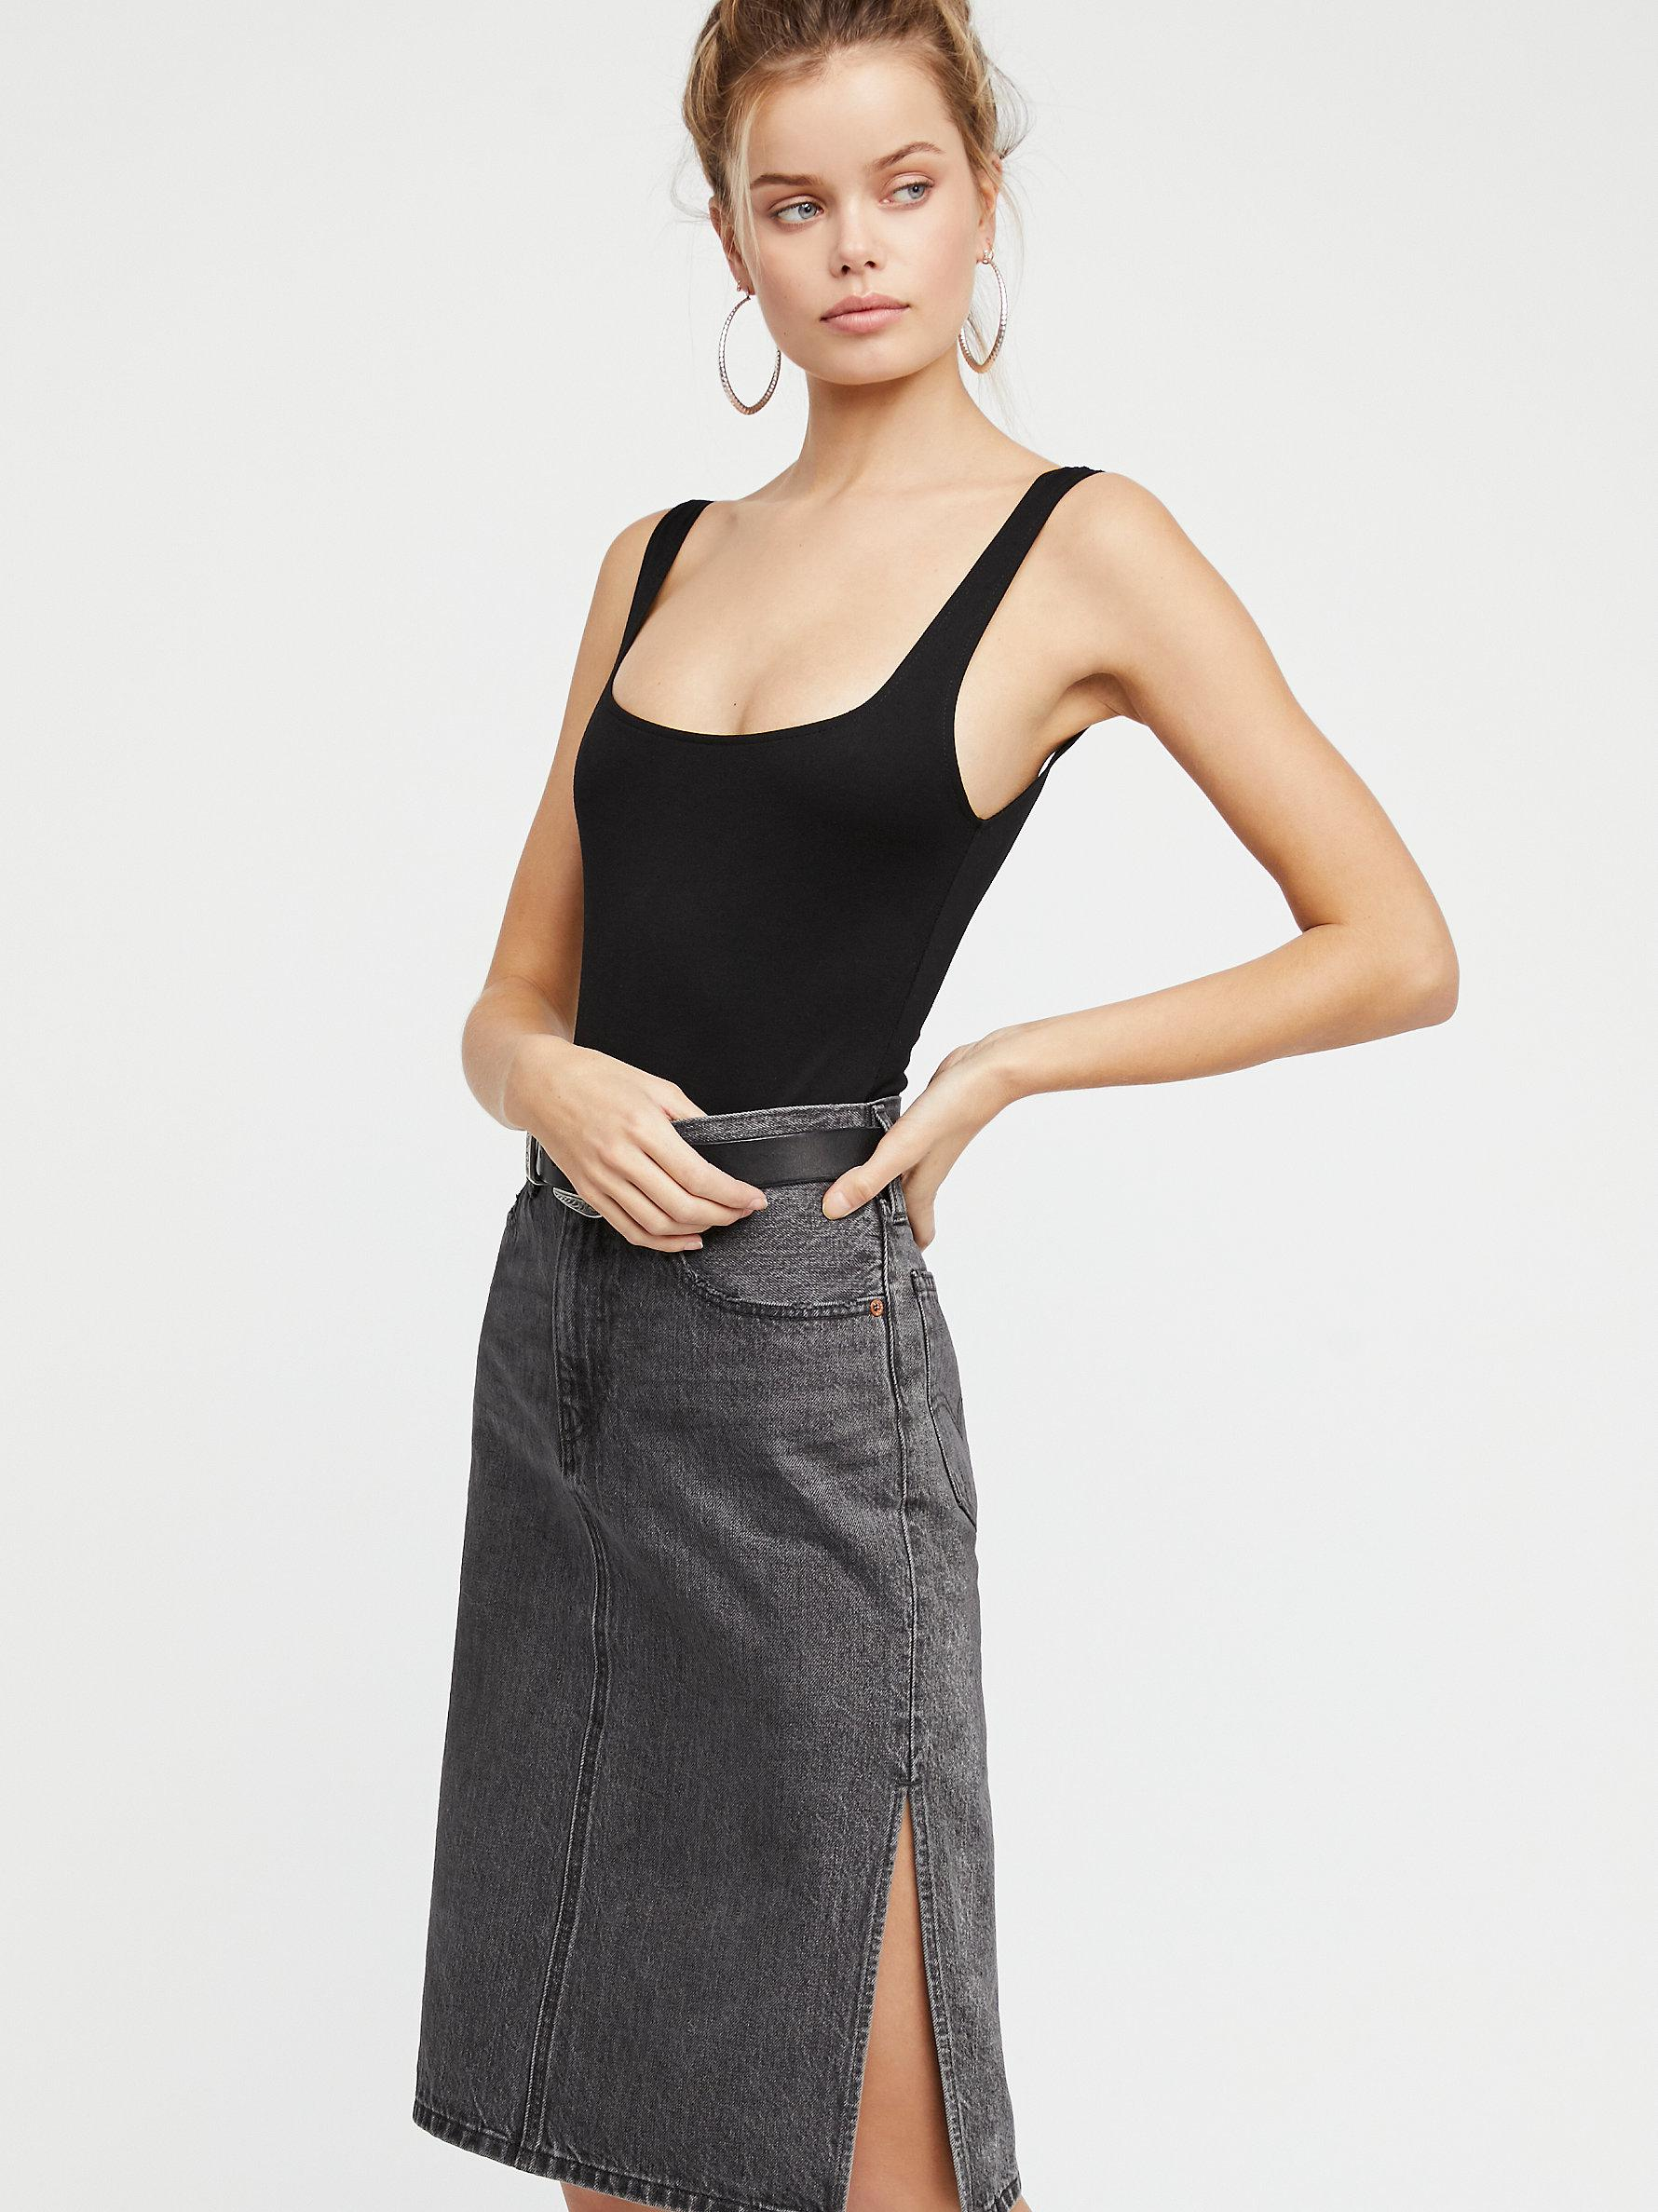 Free People Levi s Side Slit Denim Skirt in Black - Lyst 74fae662b